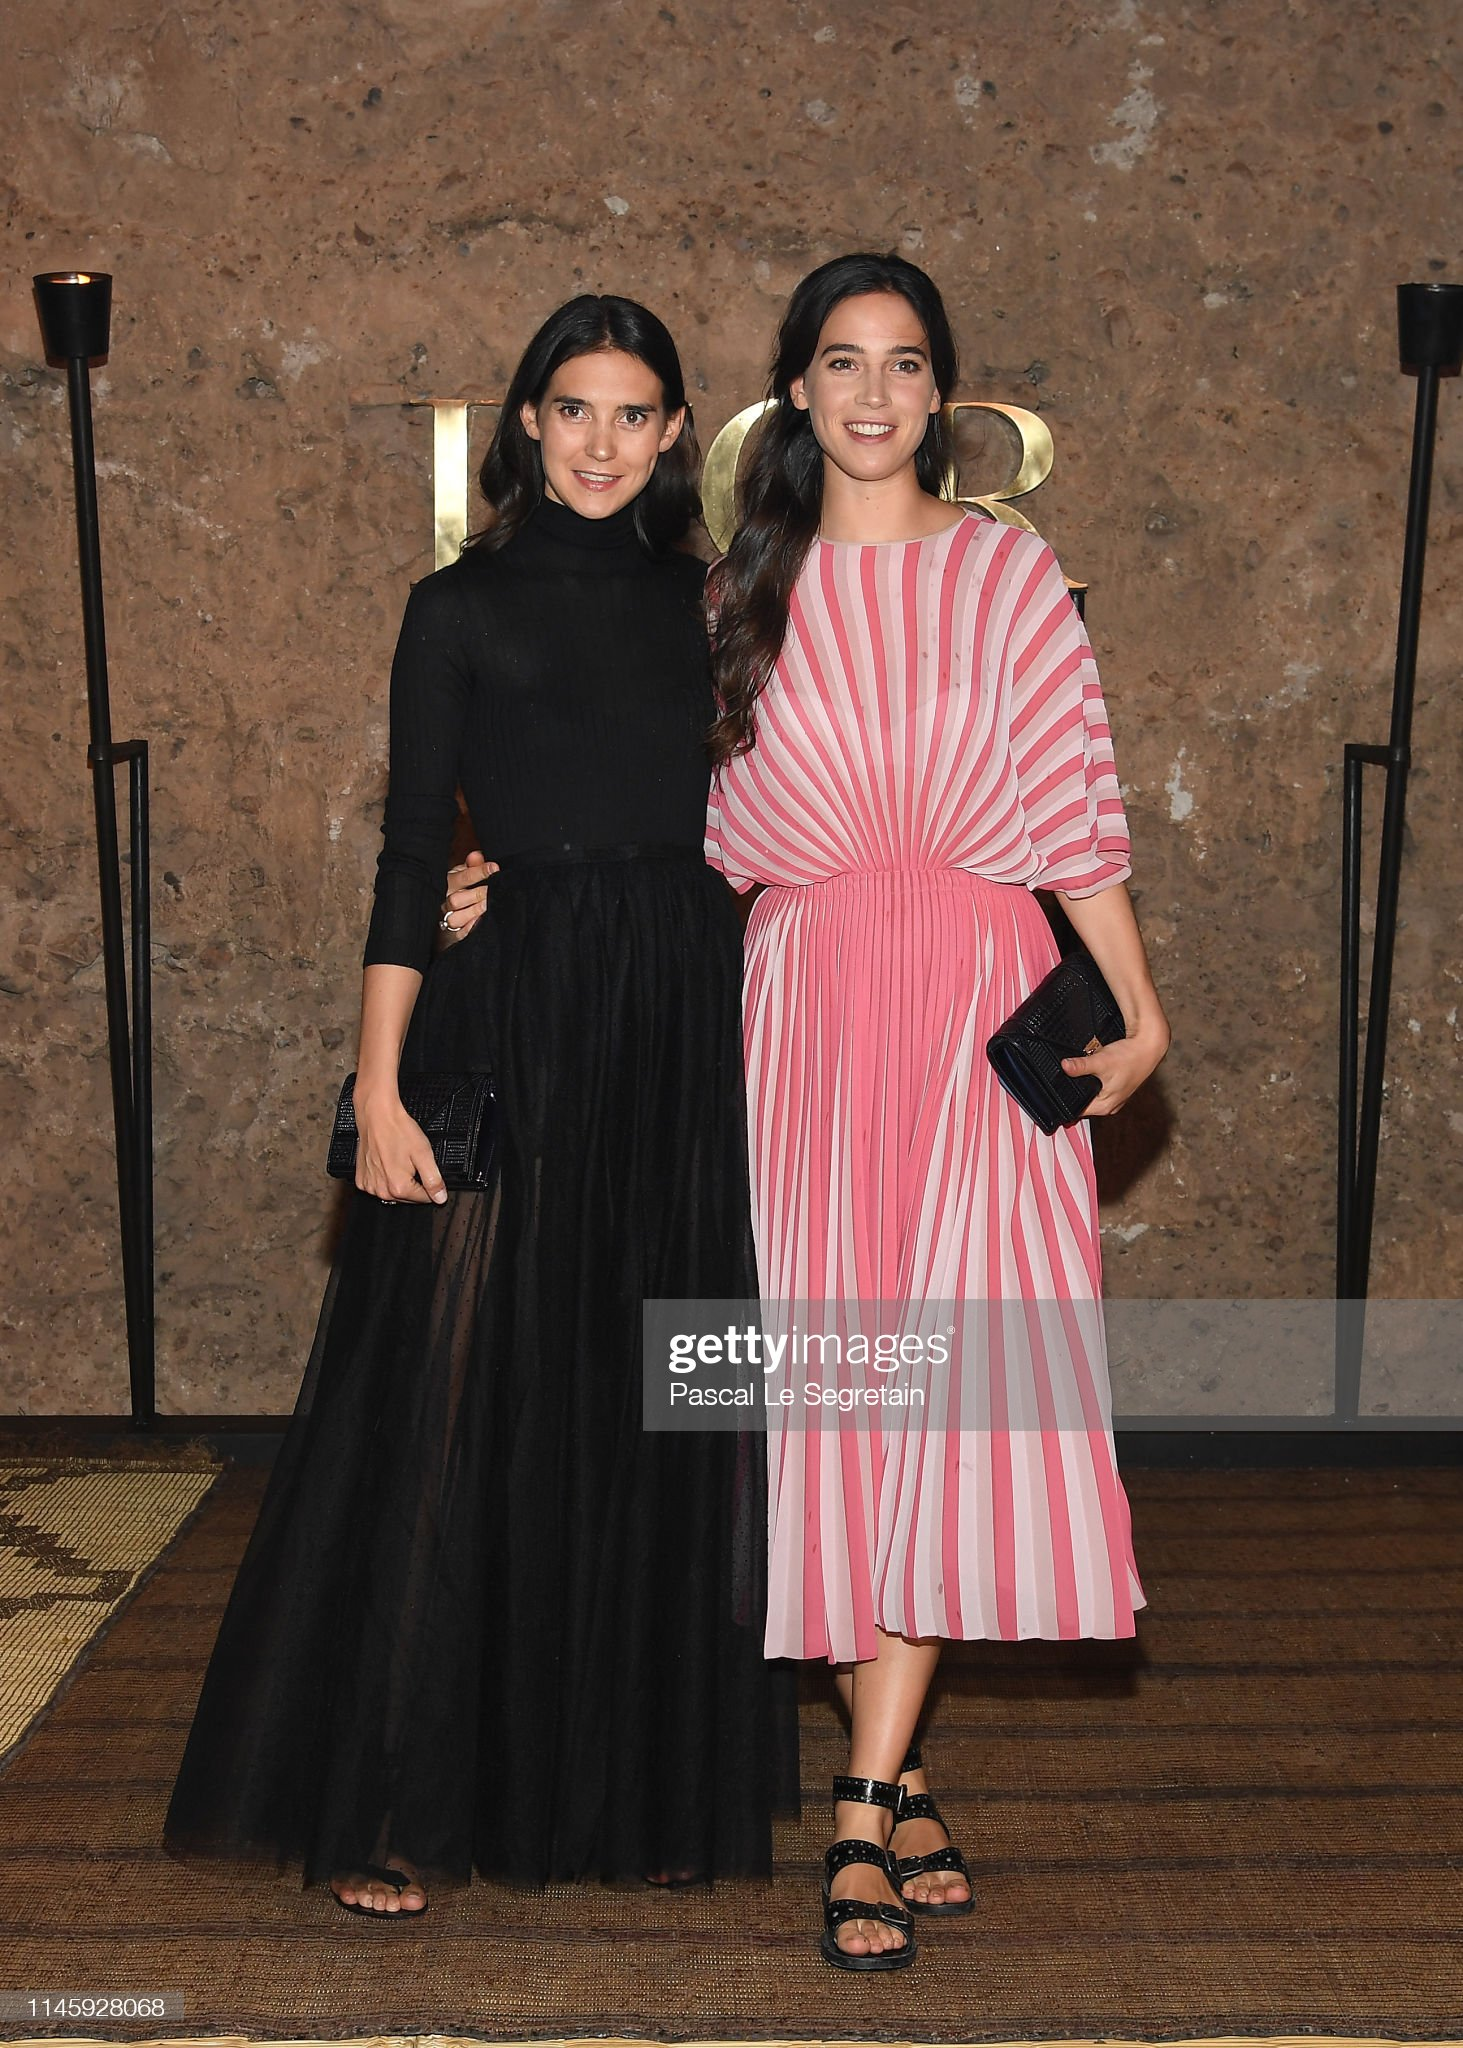 https://media.gettyimages.com/photos/viola-and-vera-arrivabene-attend-the-christian-dior-couture-ss20-on-picture-id1145928068?s=2048x2048